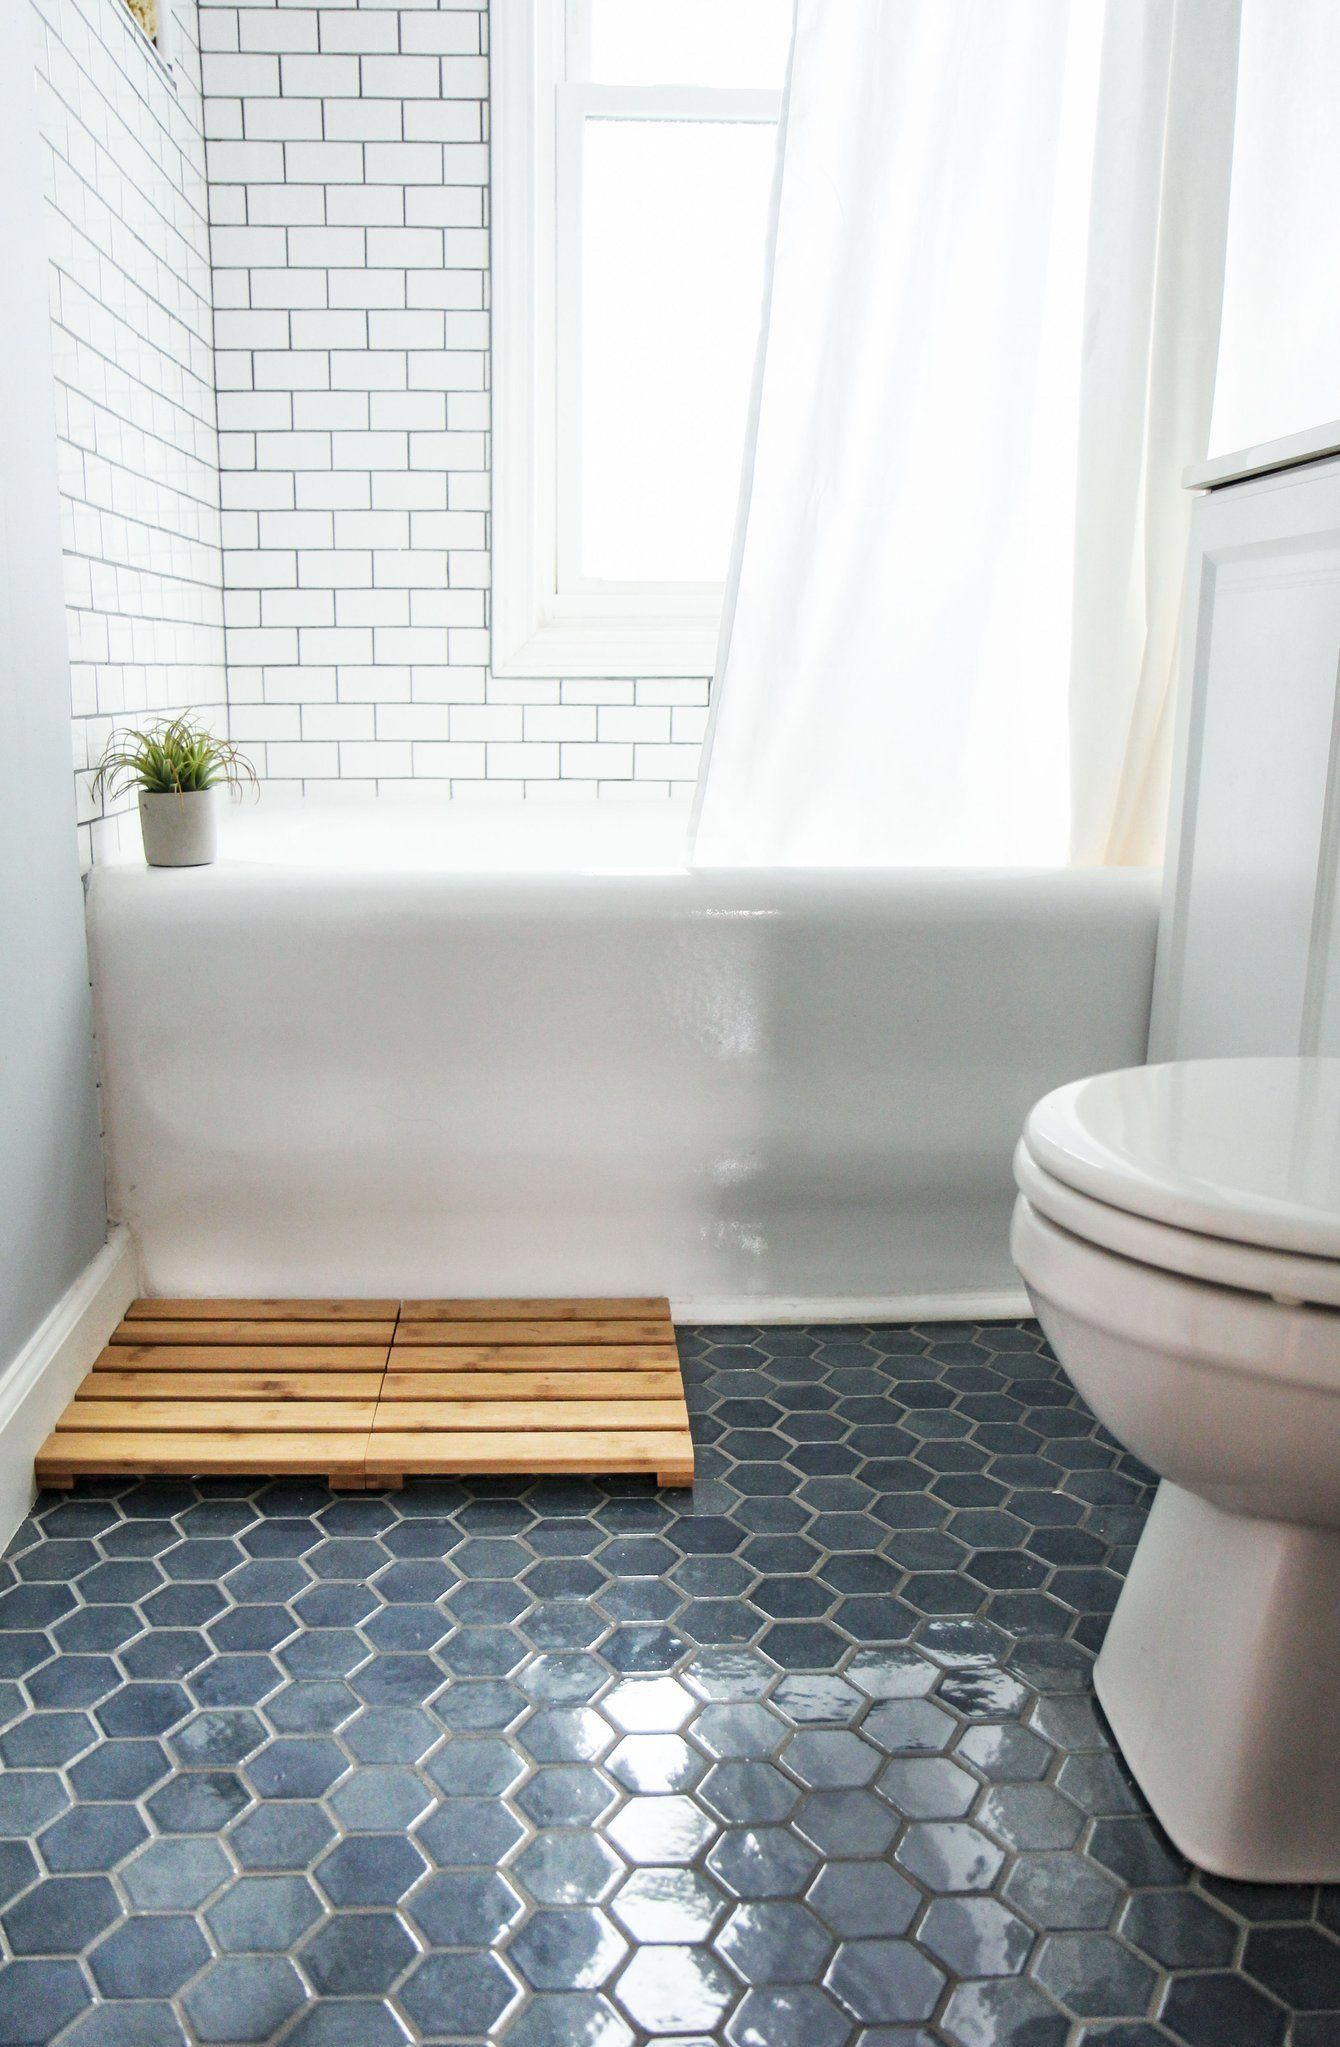 Examine This Important Illustration And Review The Shown Important Info On Fun Bathroom Ideas Bathroom Tile Renovation Tile Renovation Tile Bathroom